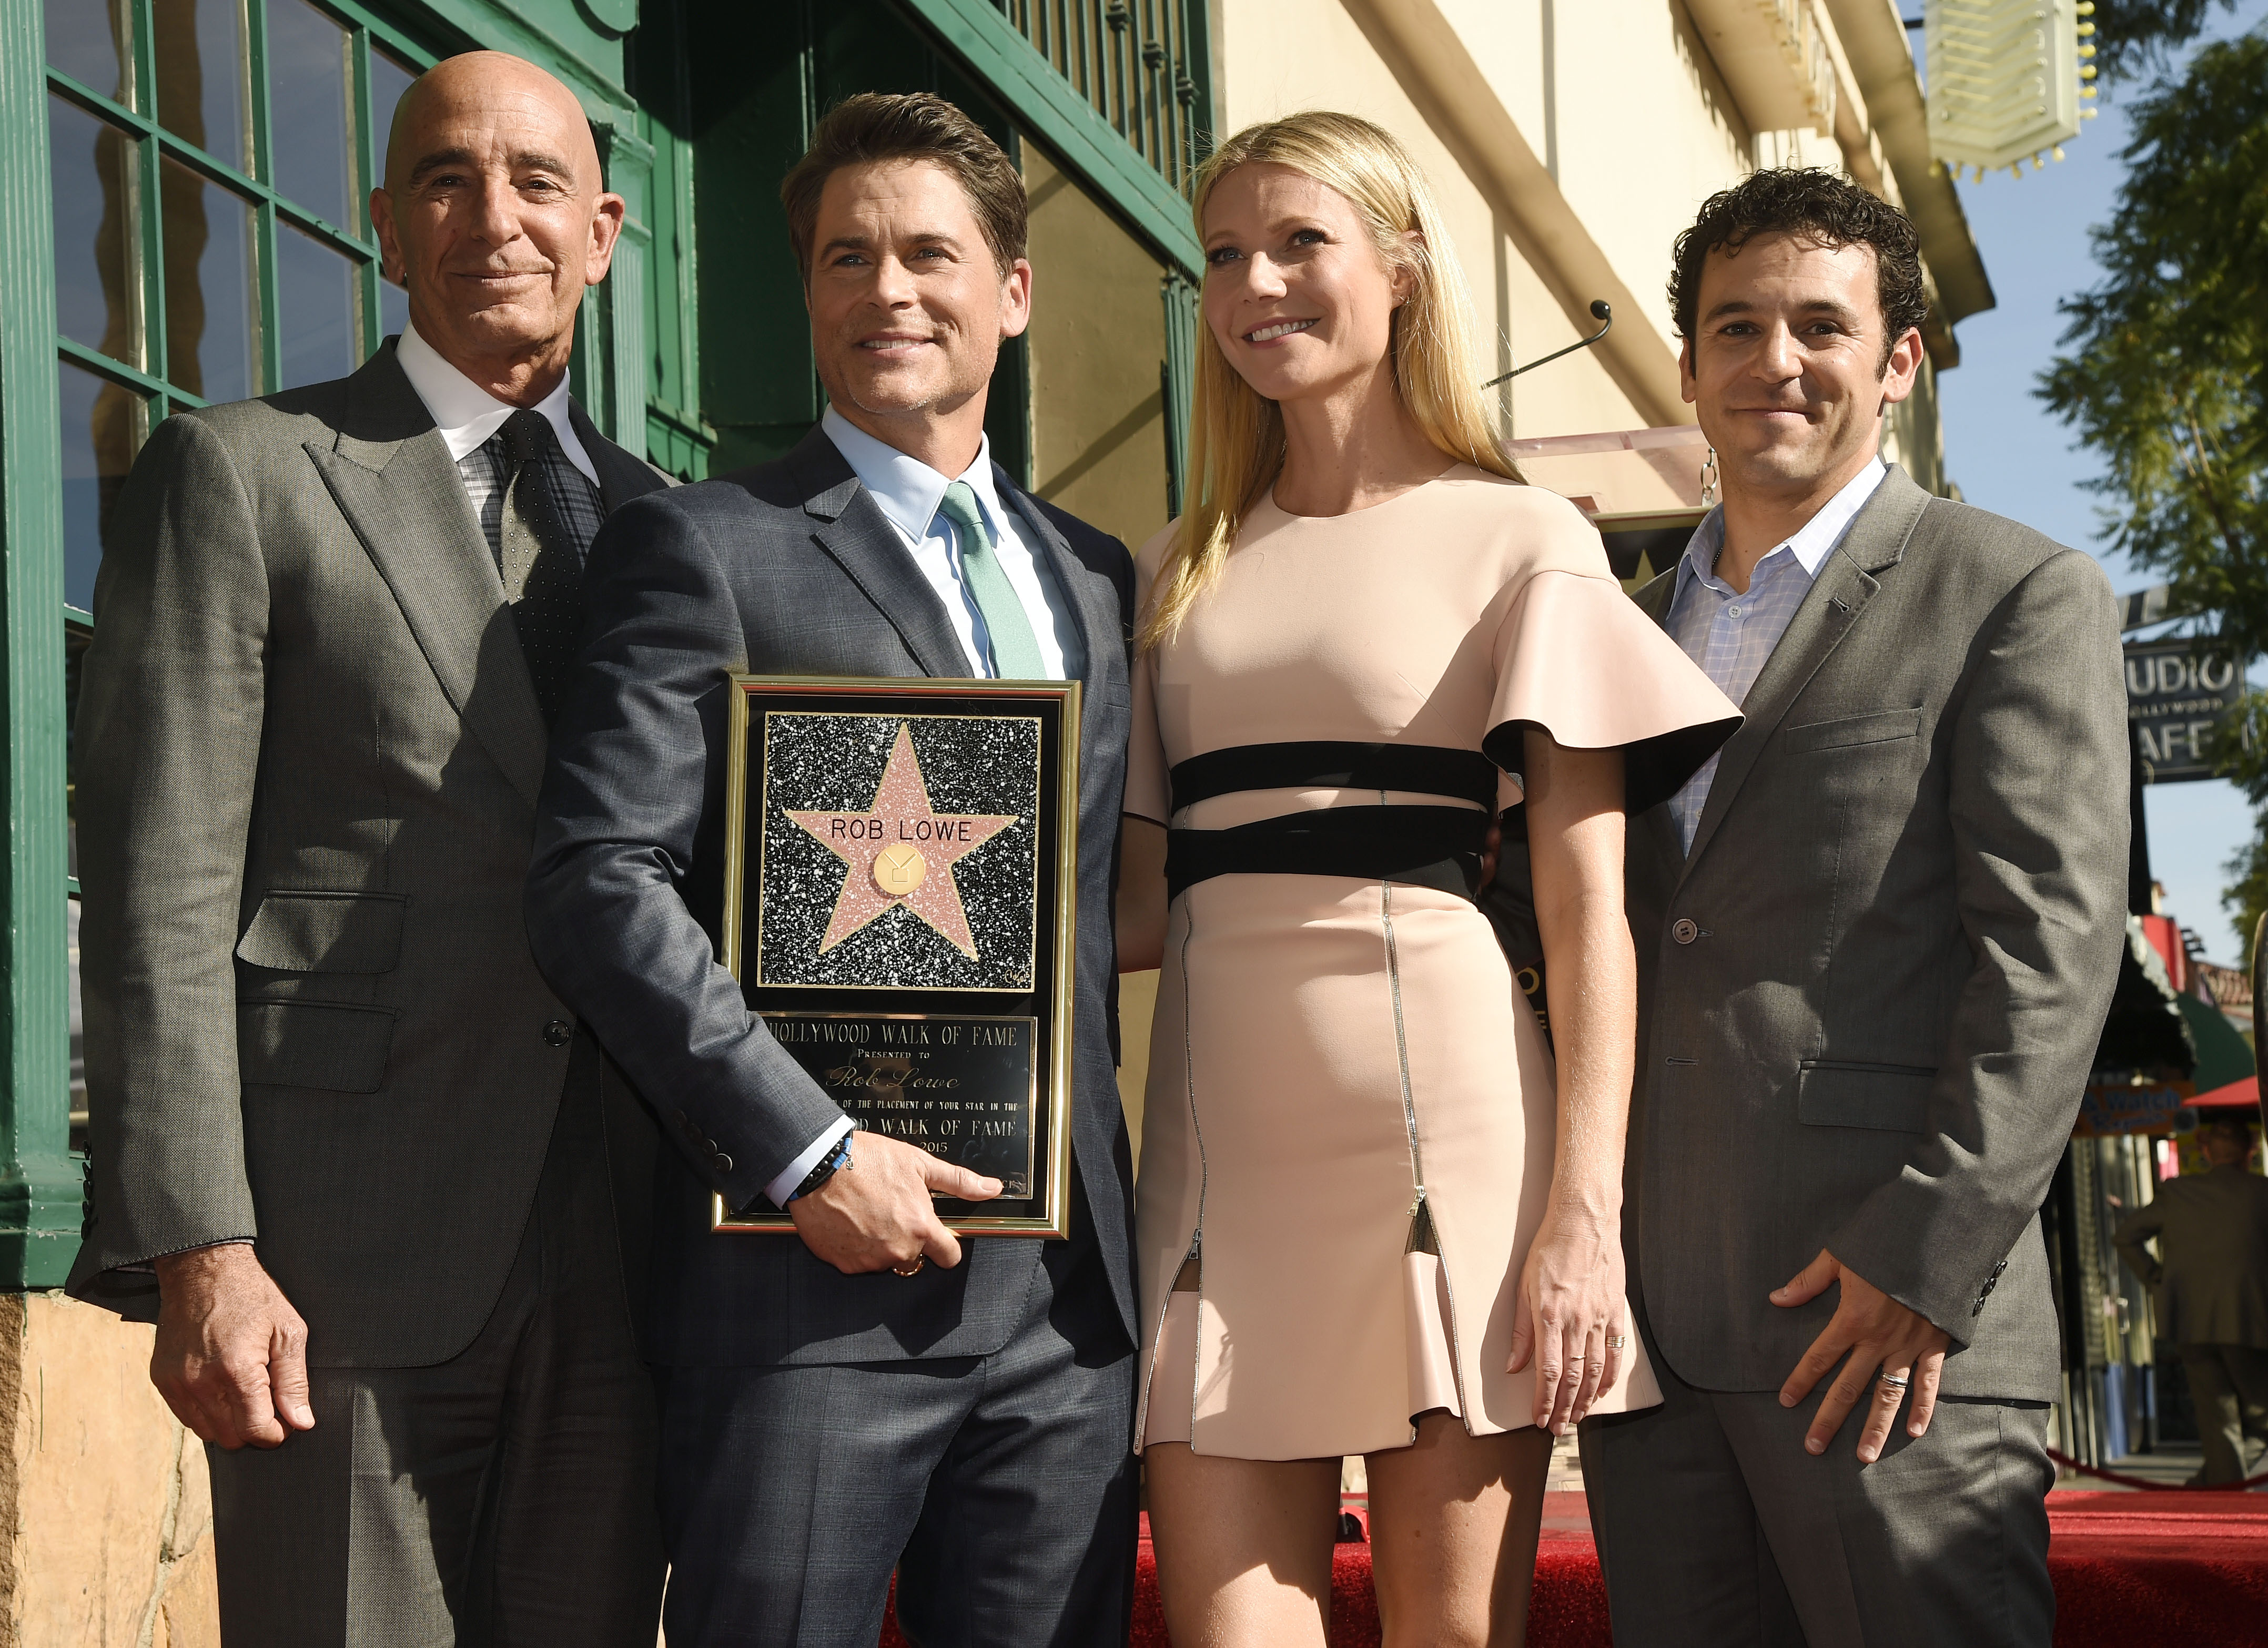 Actor Rob Lowe, second from left, poses with, left to right, Miramax Chairman Tom Barrack, actress Gwyneth Paltrow and actor Fred Savage after receiving a star on the Hollywood Walk of Fame on Tuesday, Dec. 8, 2015, in Los Angeles. (Photo by Chris Pizzello/Invision/AP)